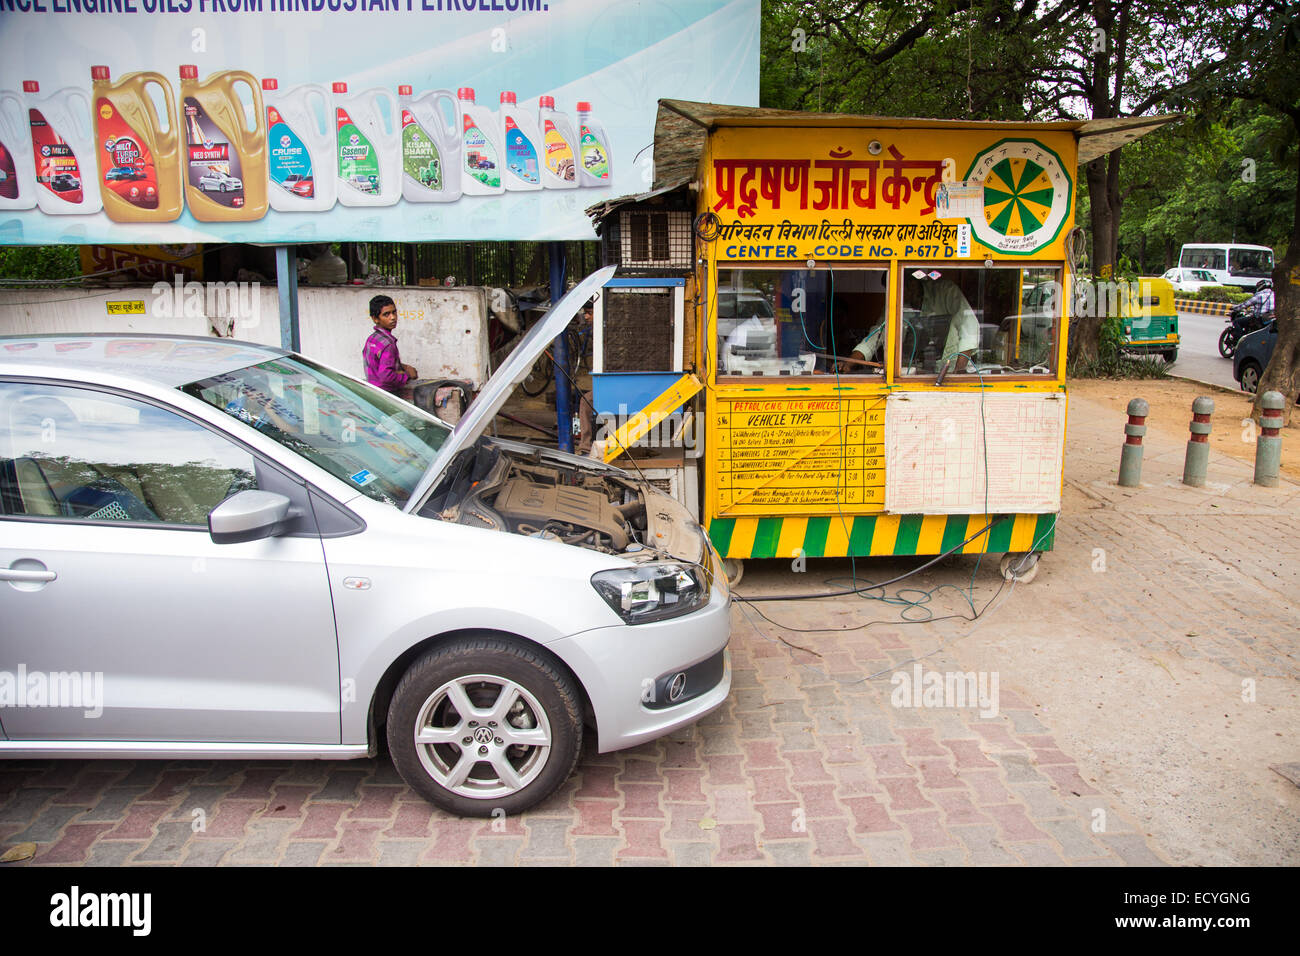 Emissions testing in Delhi, India - Stock Image